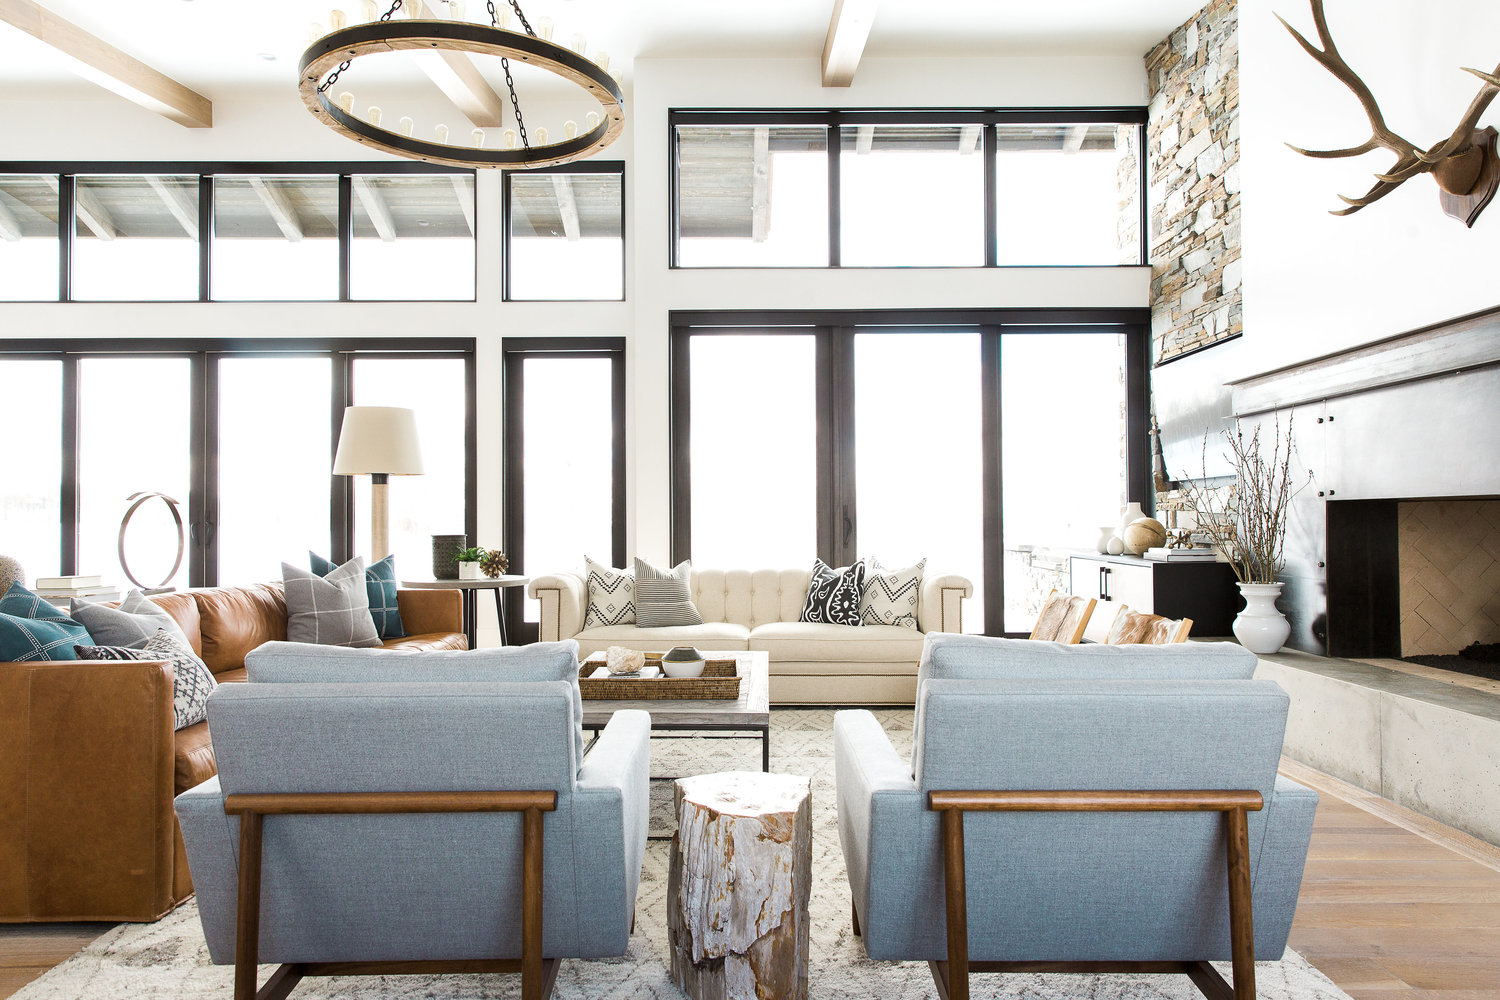 Back of double blue chairs in living room